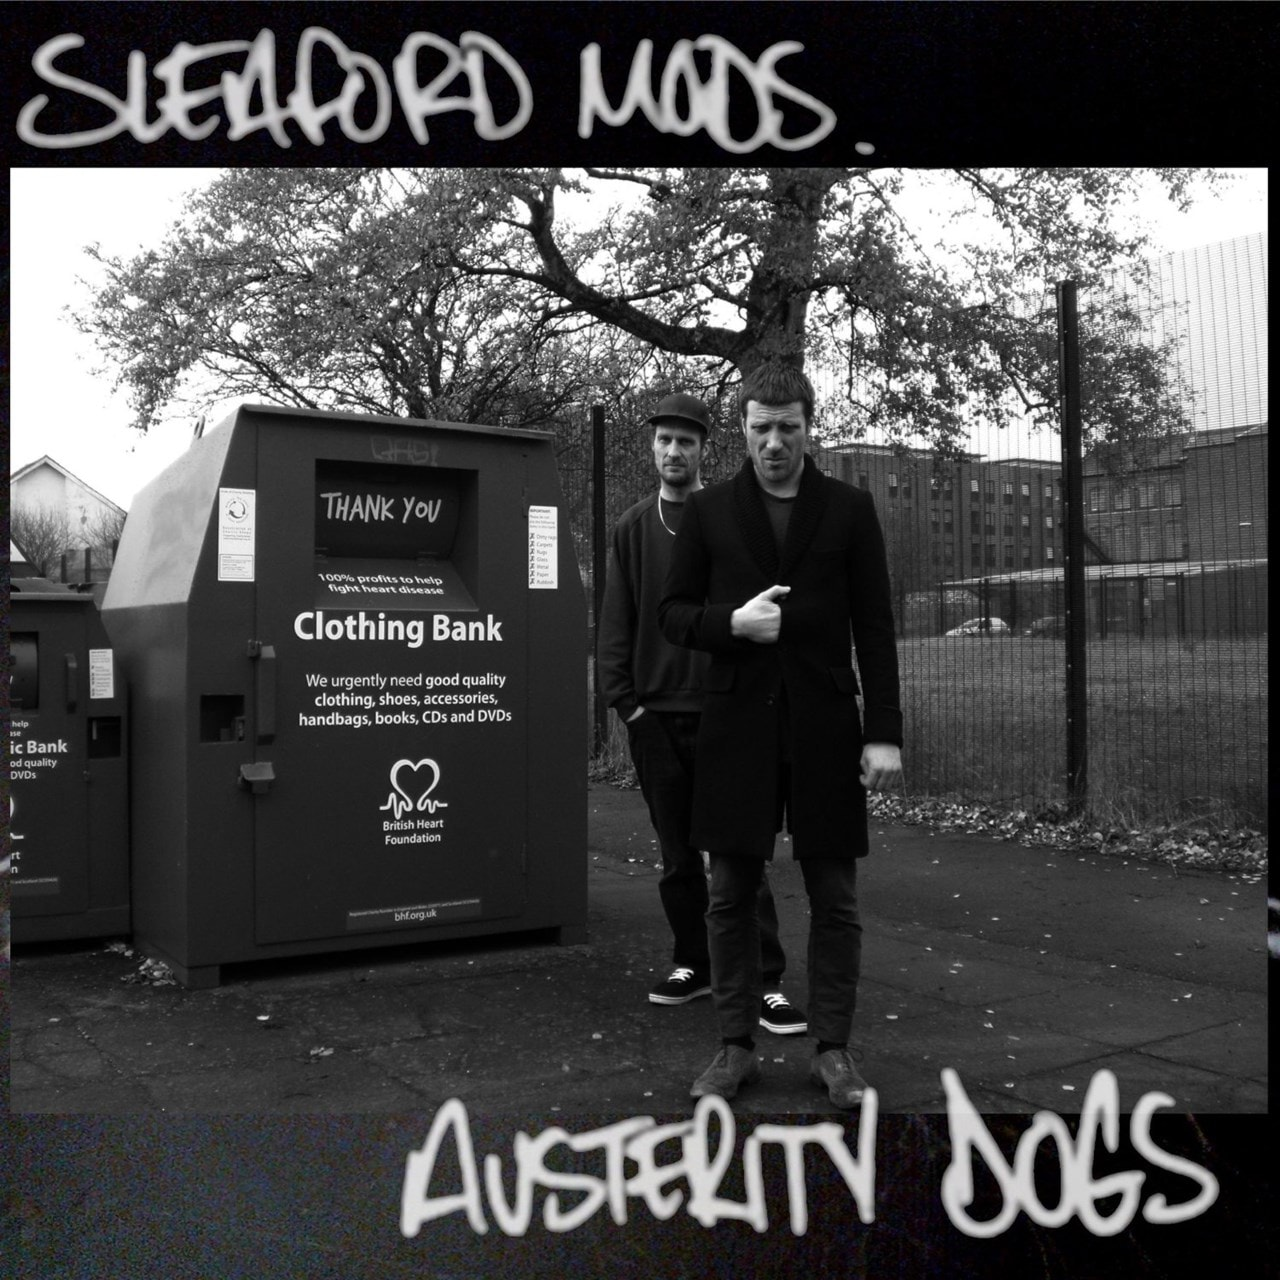 Austerity Dogs - 1